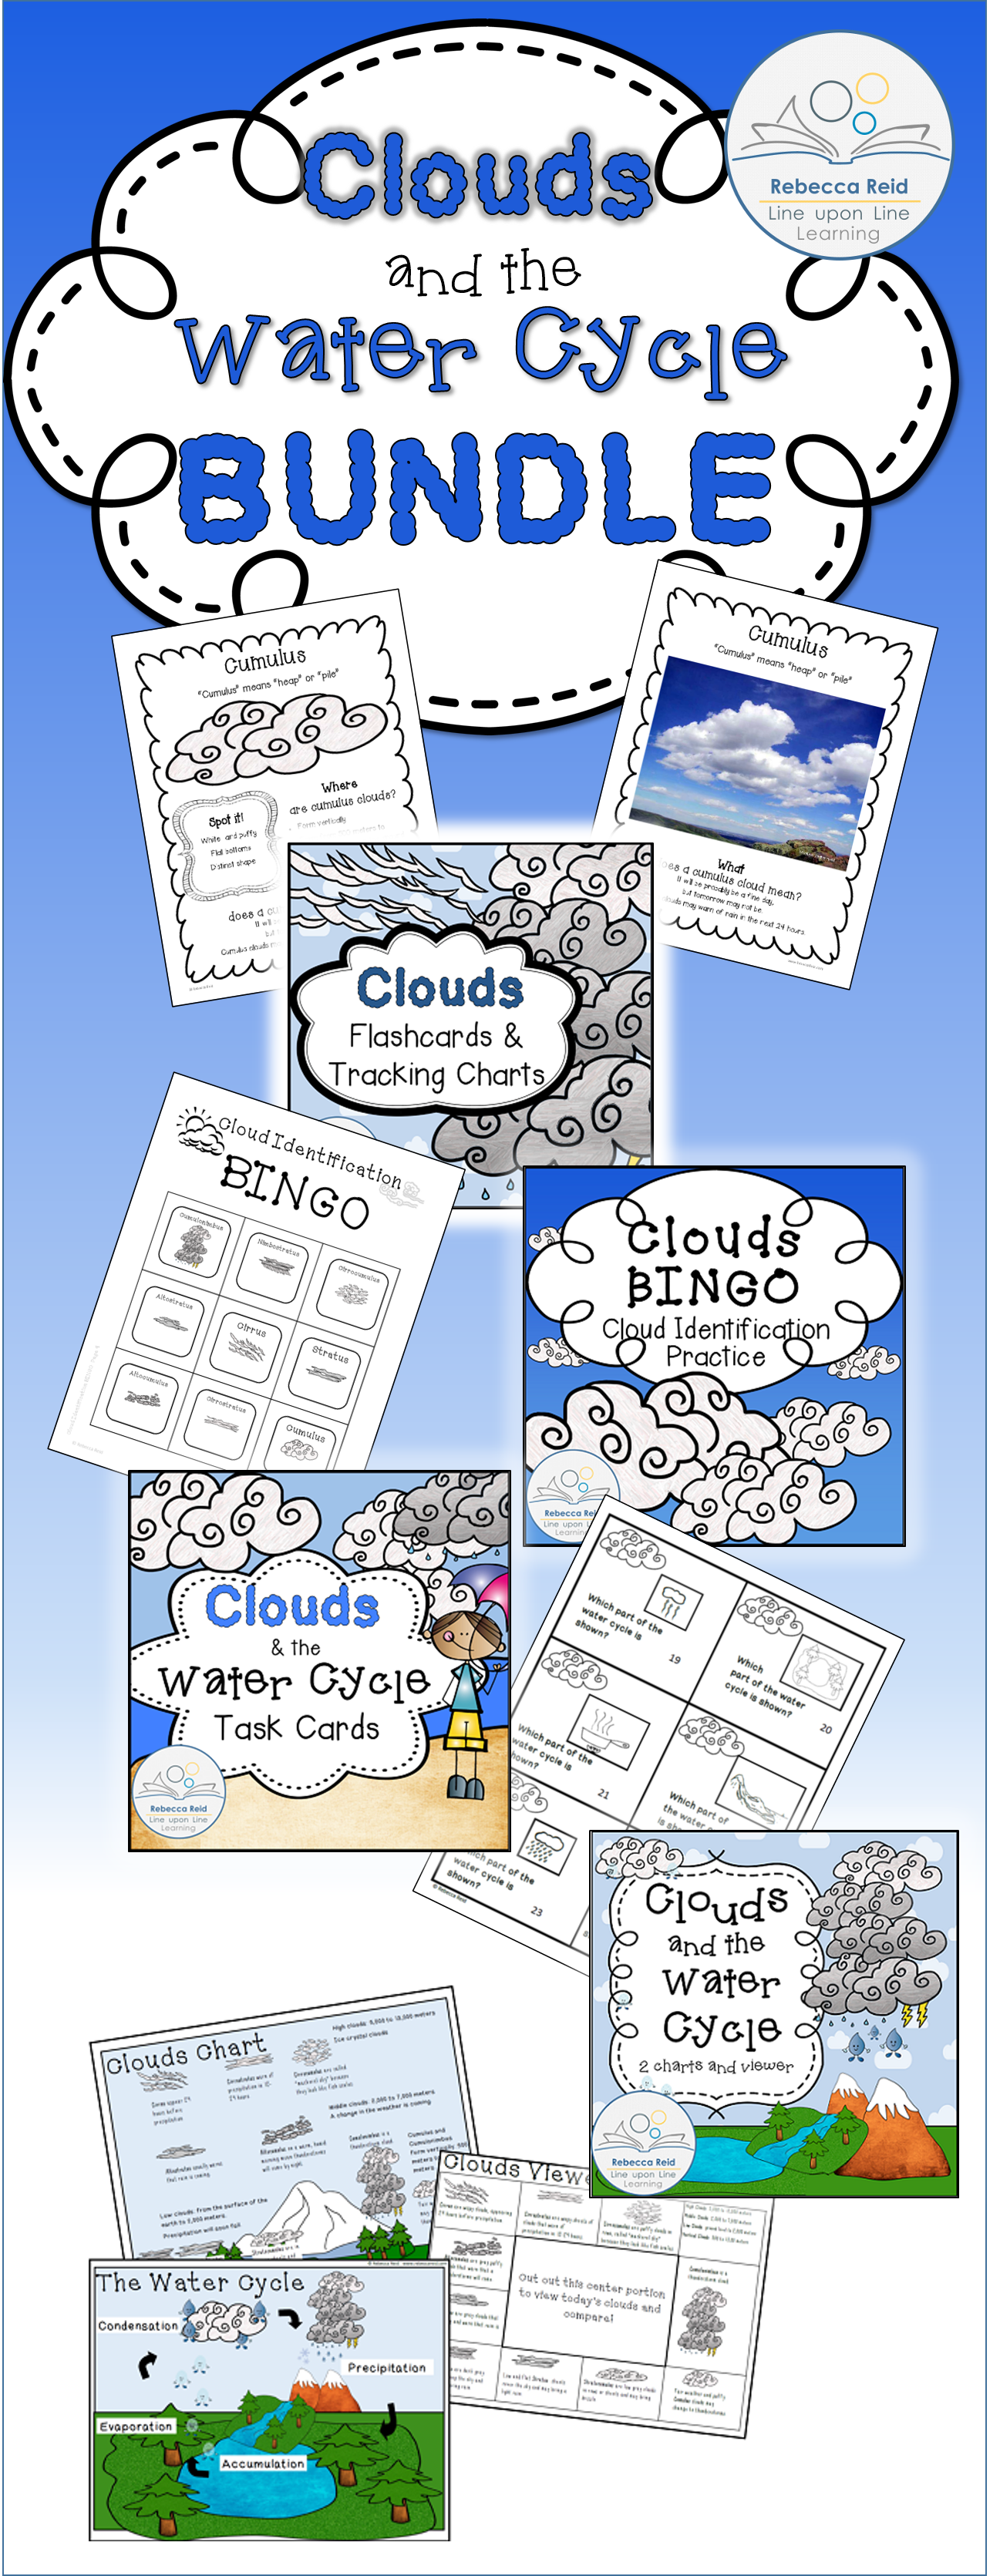 small resolution of clouds and the water cycle bundle is packed with activities to review ten different clouds